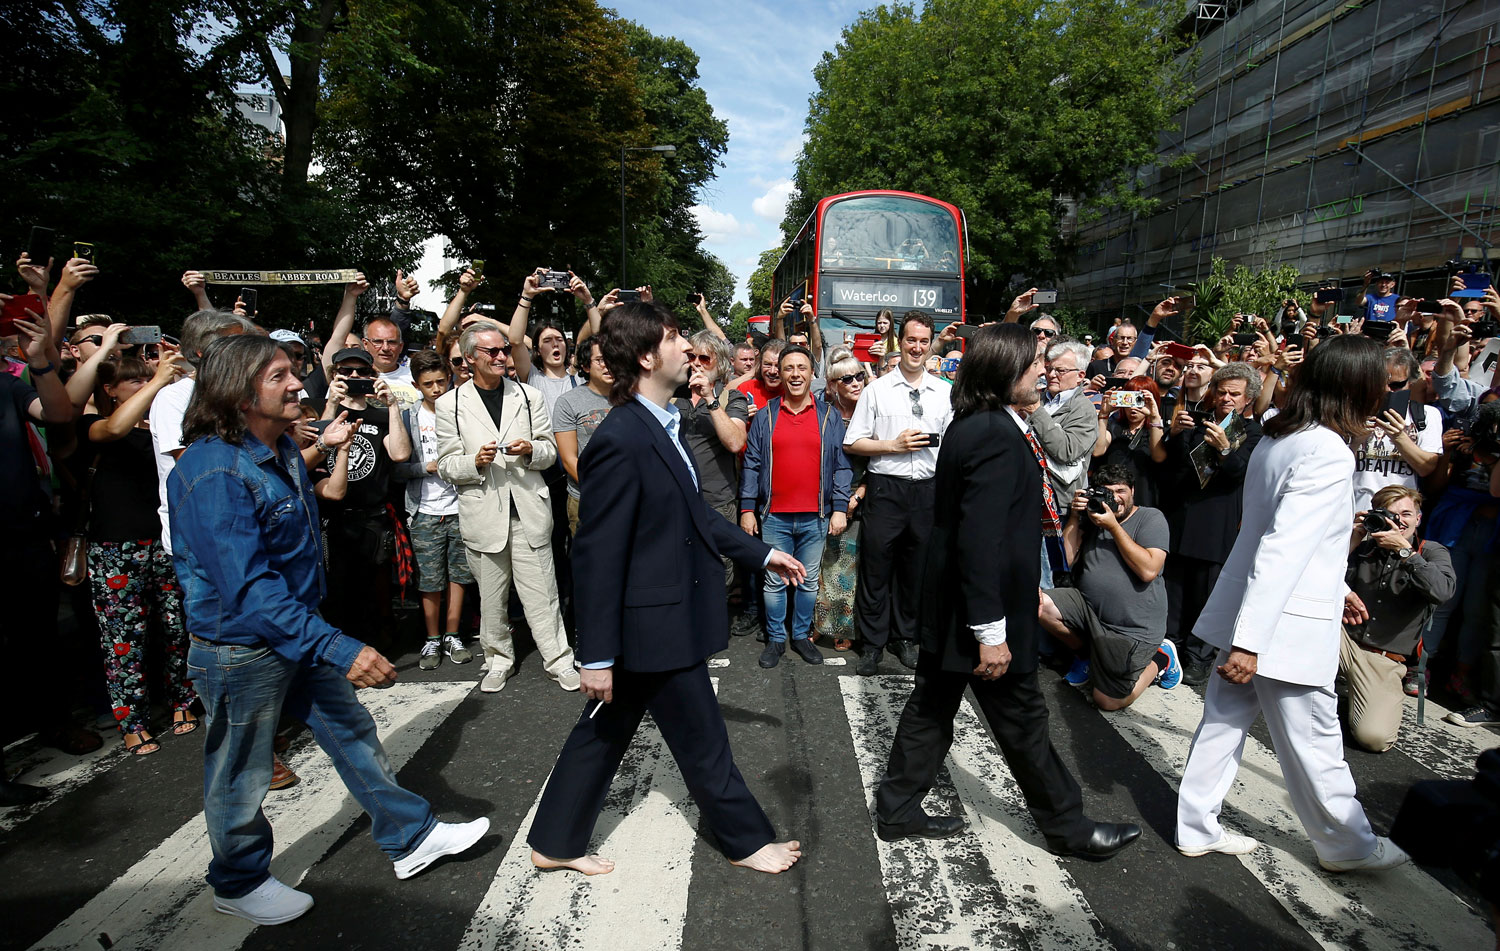 Les fans reproduisent la photo des Beatles traversant Abbey Road le 08.08.1969.